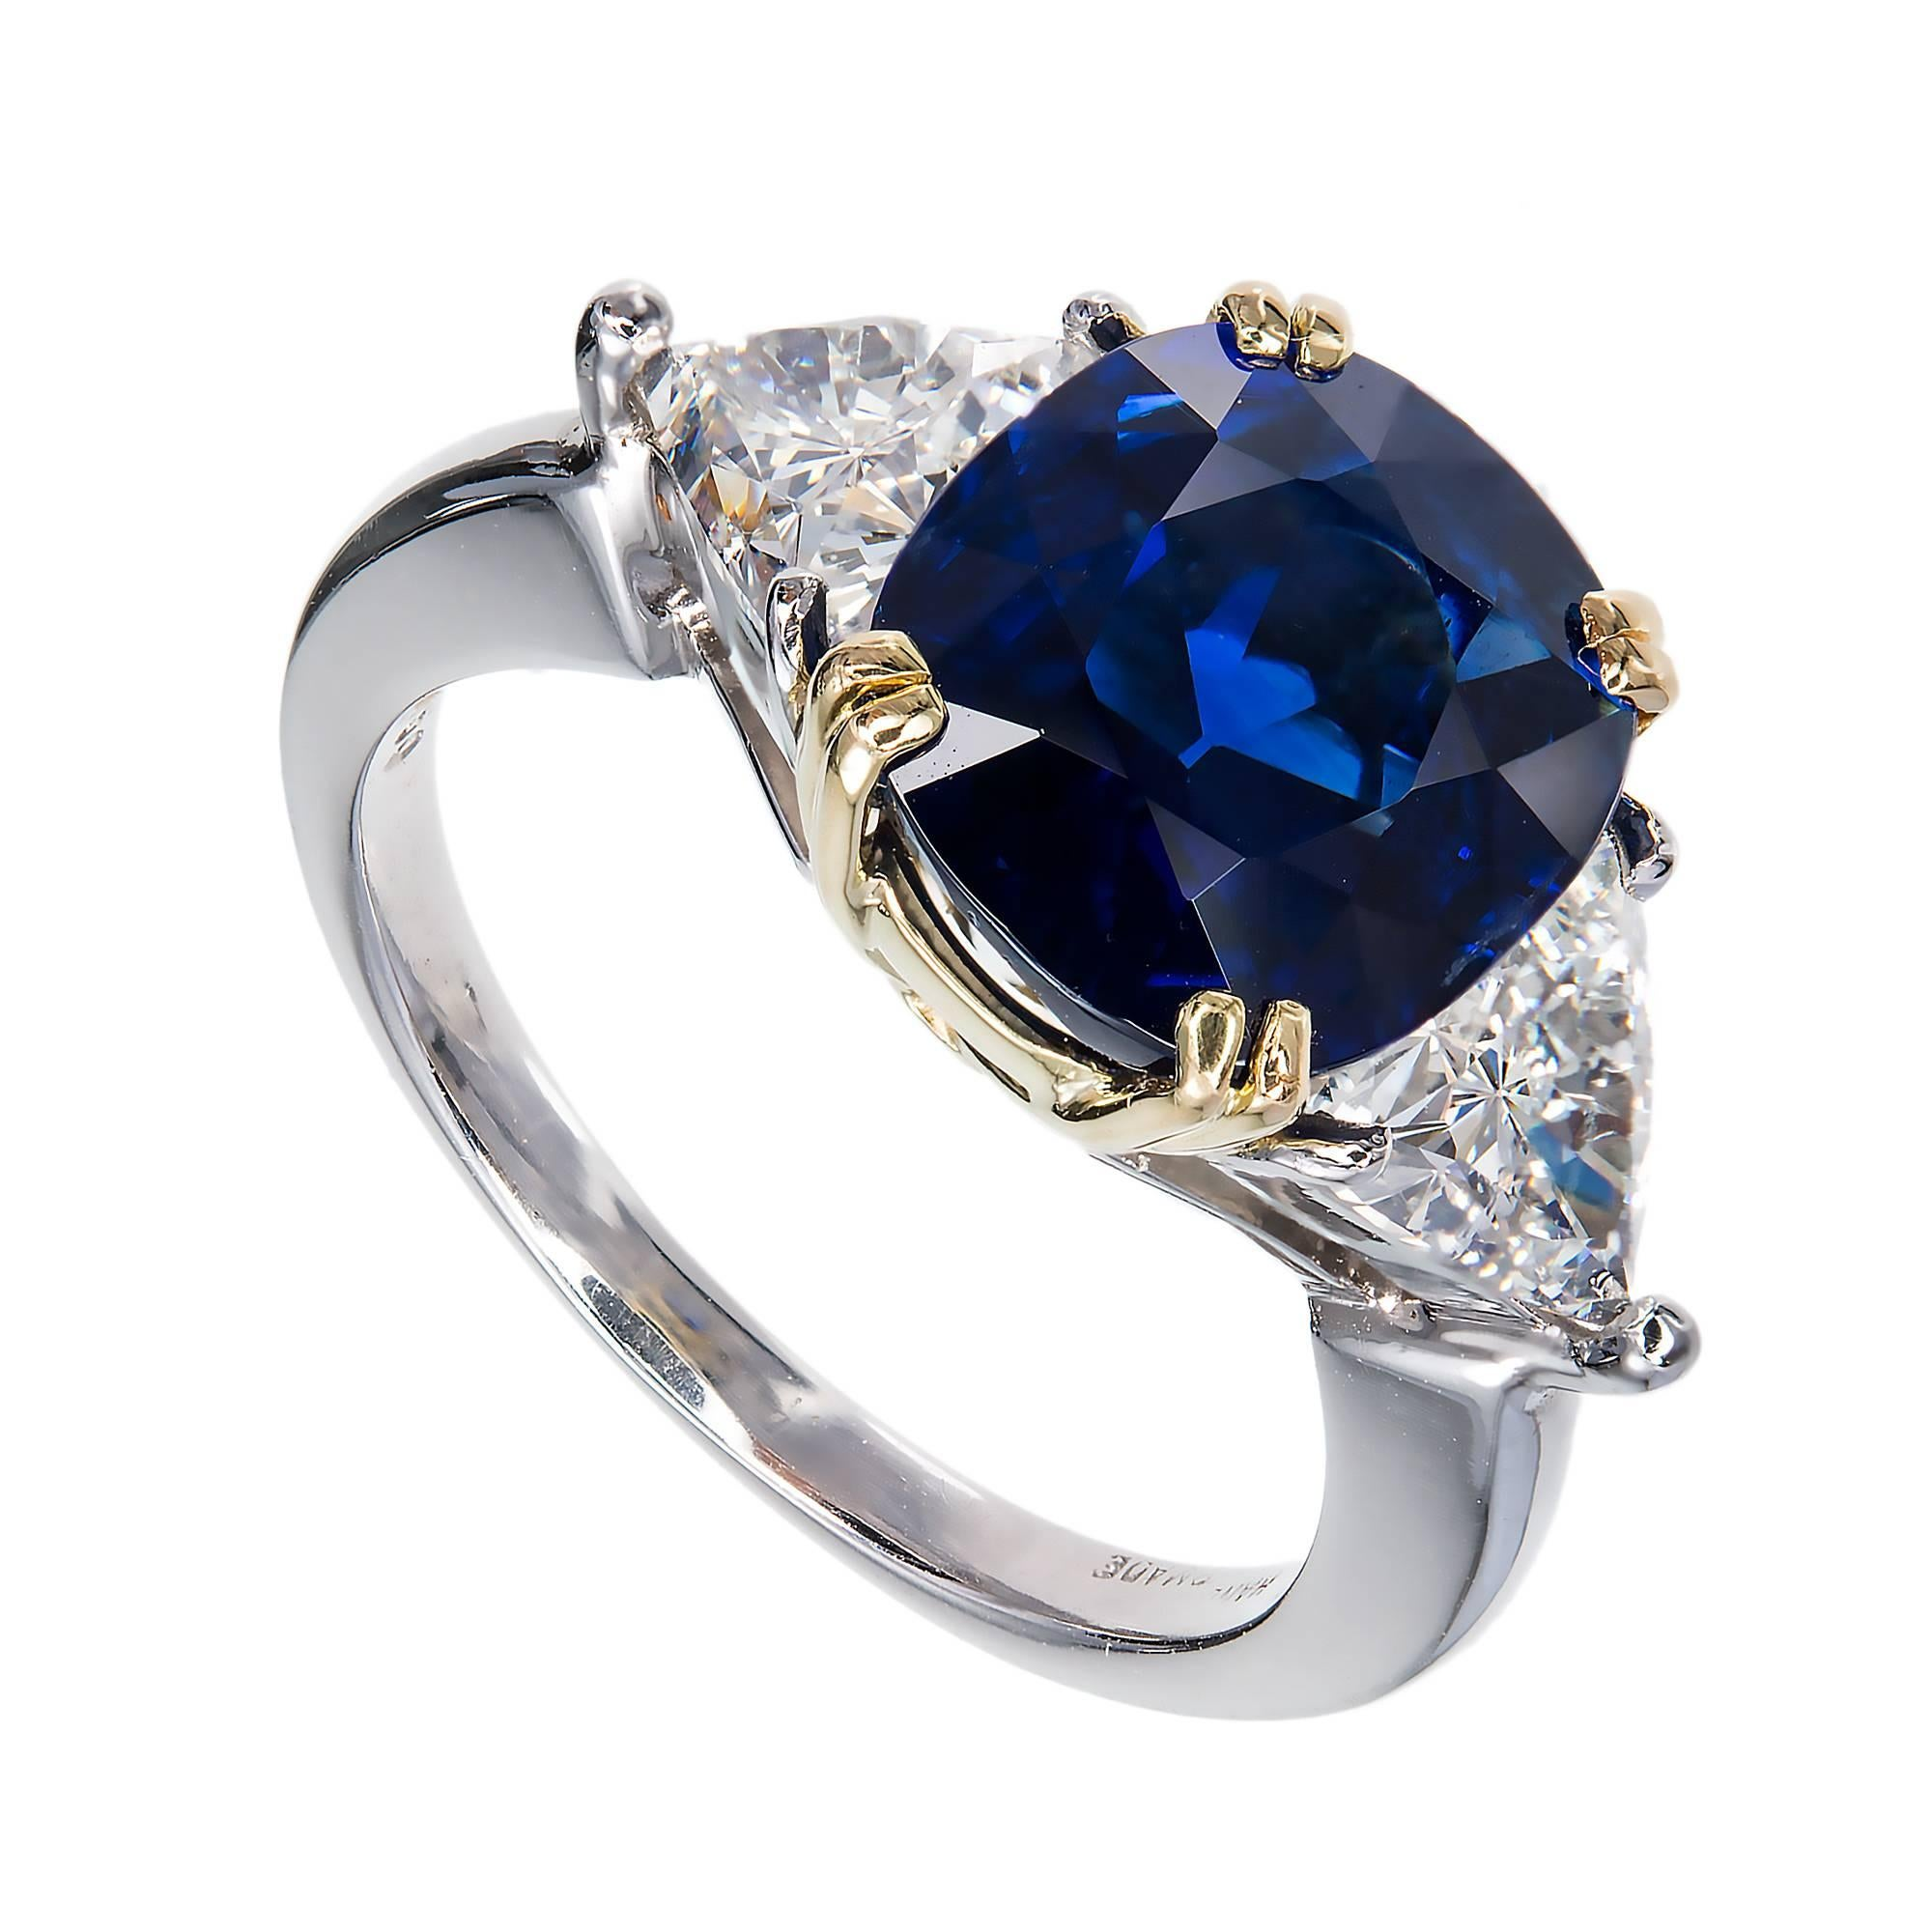 diamond lyst bittar product royal yellow marquis alexis convertible ring blue set sapphire gallery gold fine light jewelry topaz normal rings